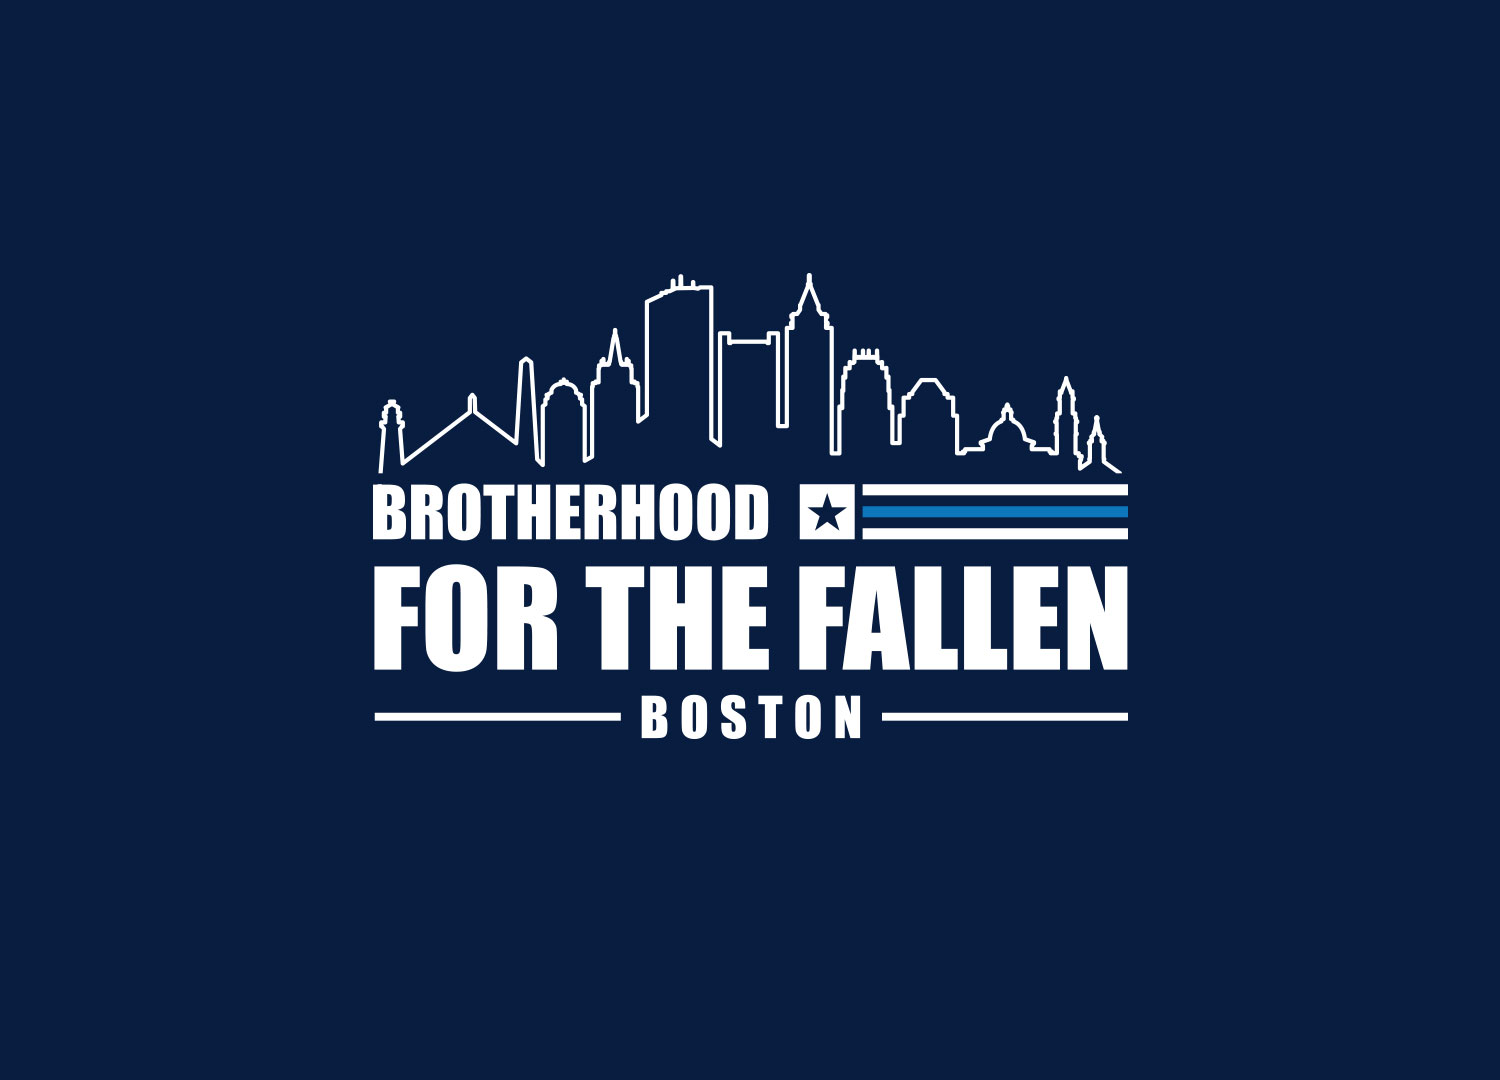 Brotherhood For The Fallen | Promo Items | Apparel | Graphic Design | Branding